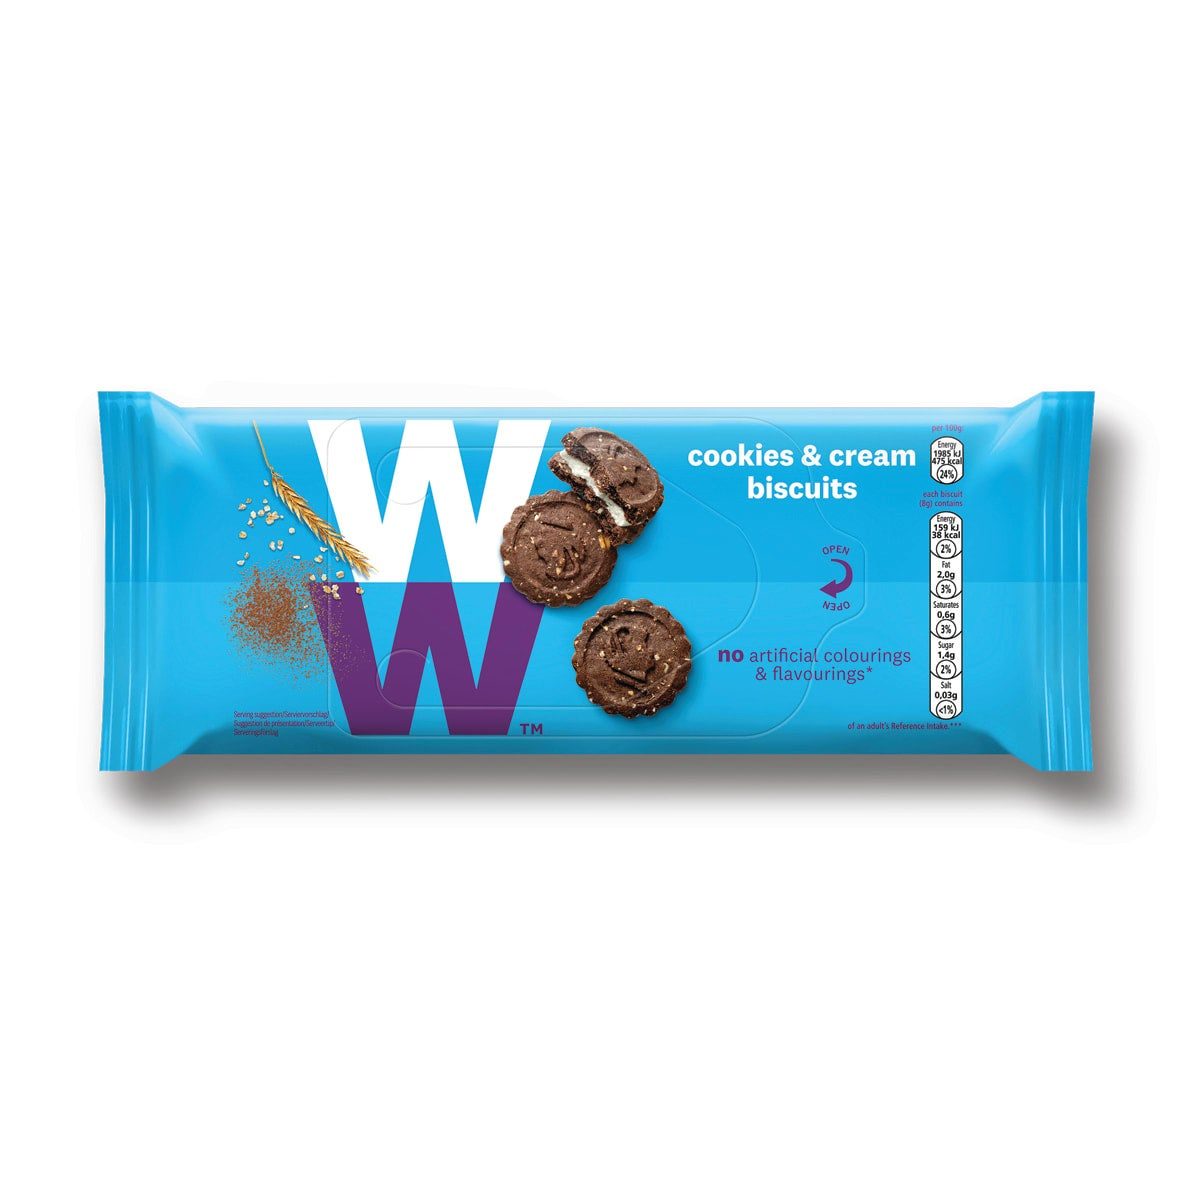 Box of 31, WW Cookies and Cream Biscuits, chocolate sandwich biscuit with a cream filling,  perfect snack with a cuppa, 1 SmartPoint value